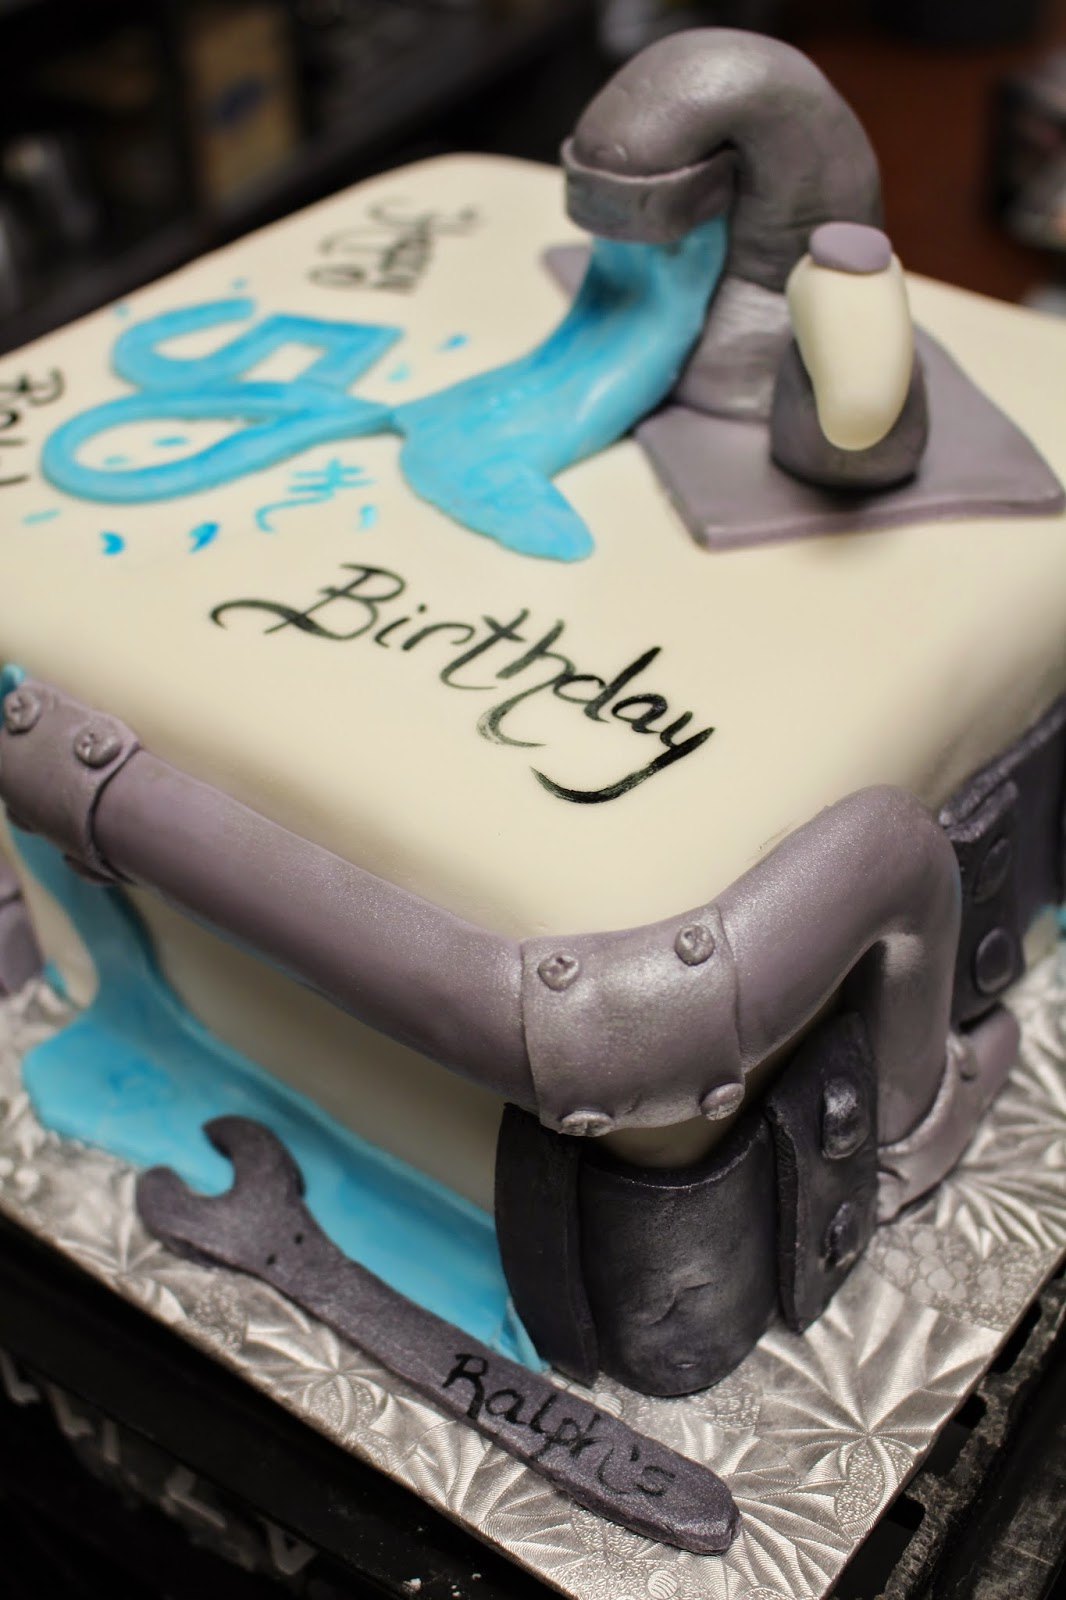 Plumber Birthday Cake Ideas